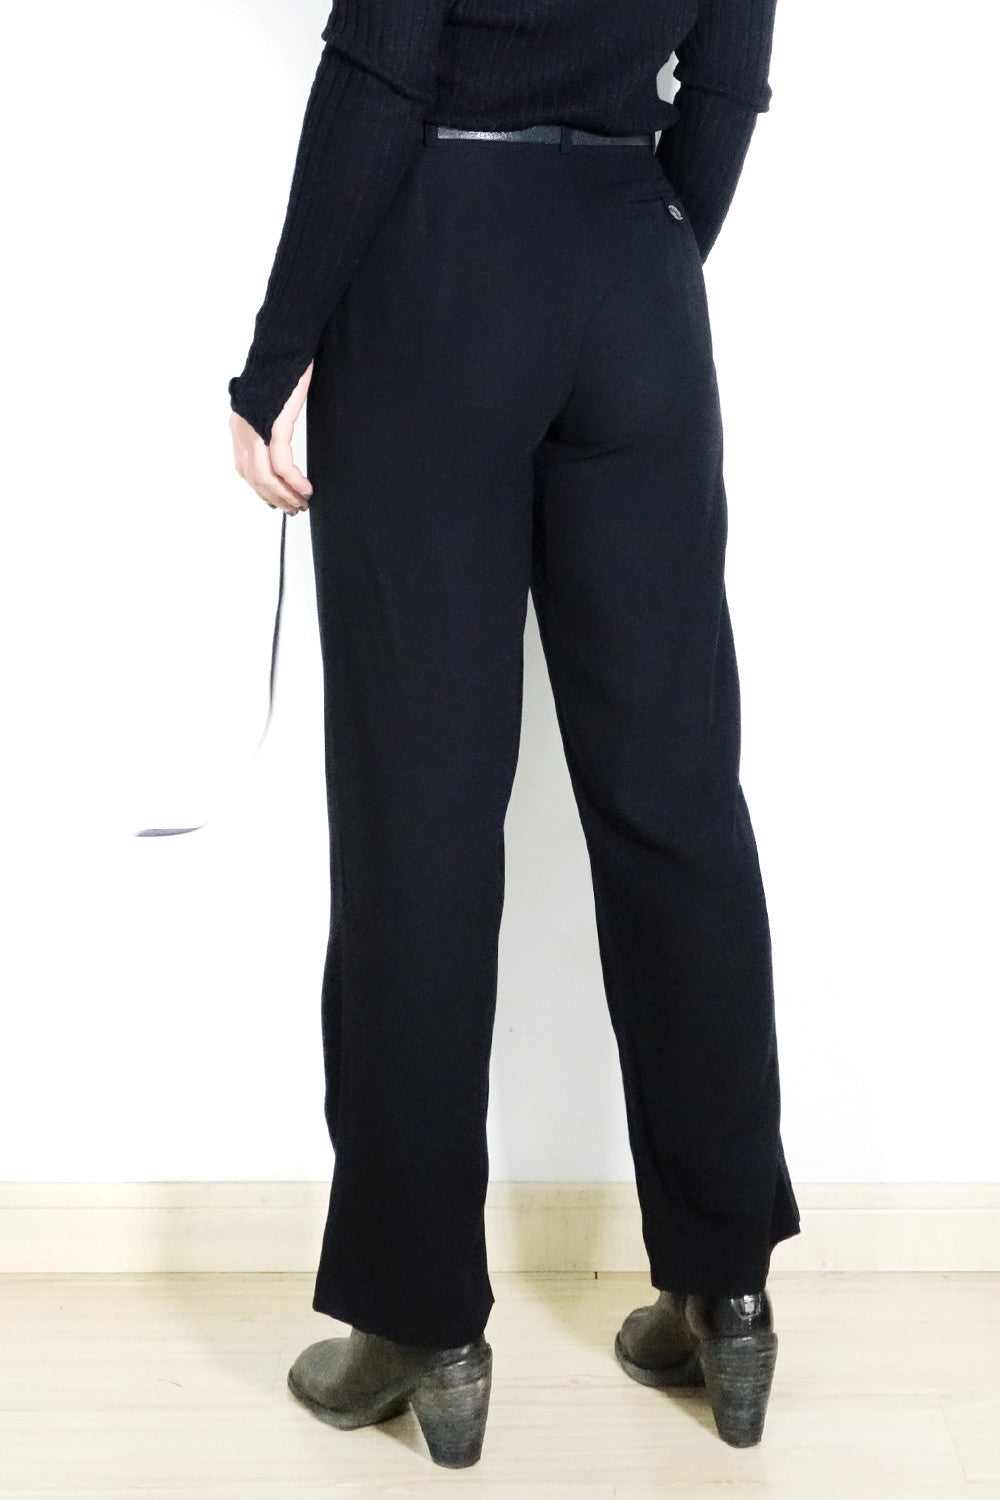 Ann Demeulemeester Tailored Trousers Sz 36